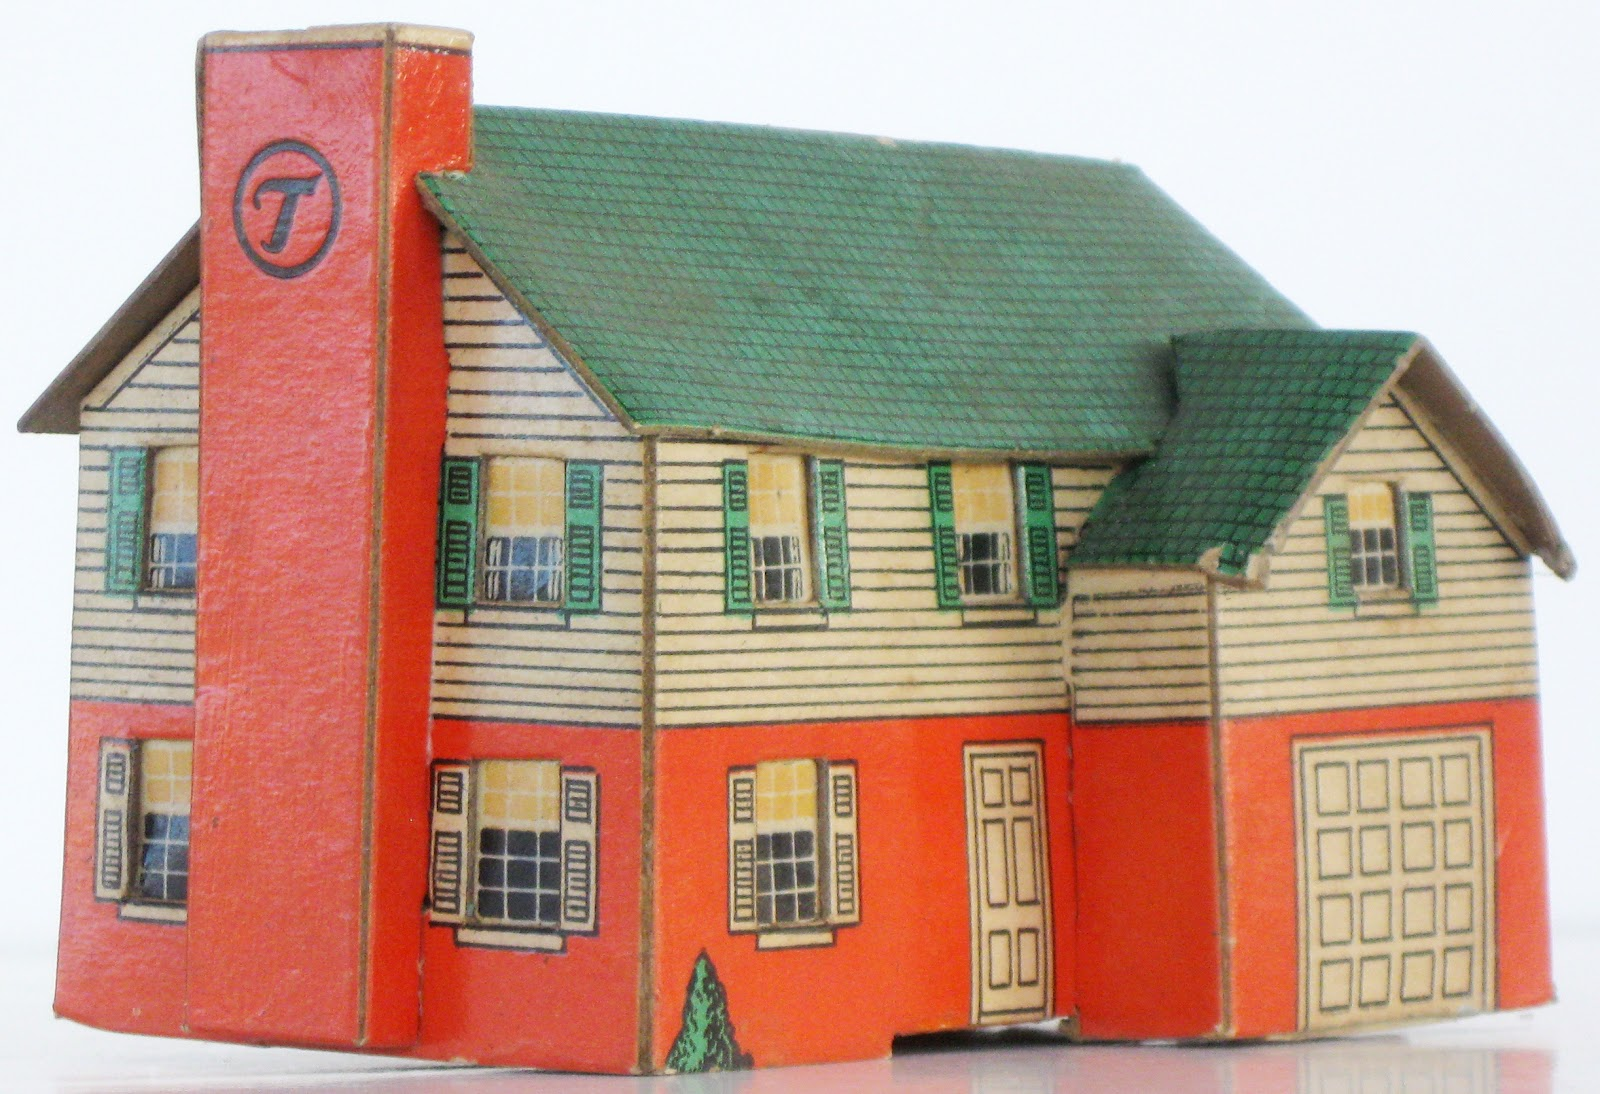 Toys and stuff built rite 1940s 2 story house w garage for 2 story house with garage